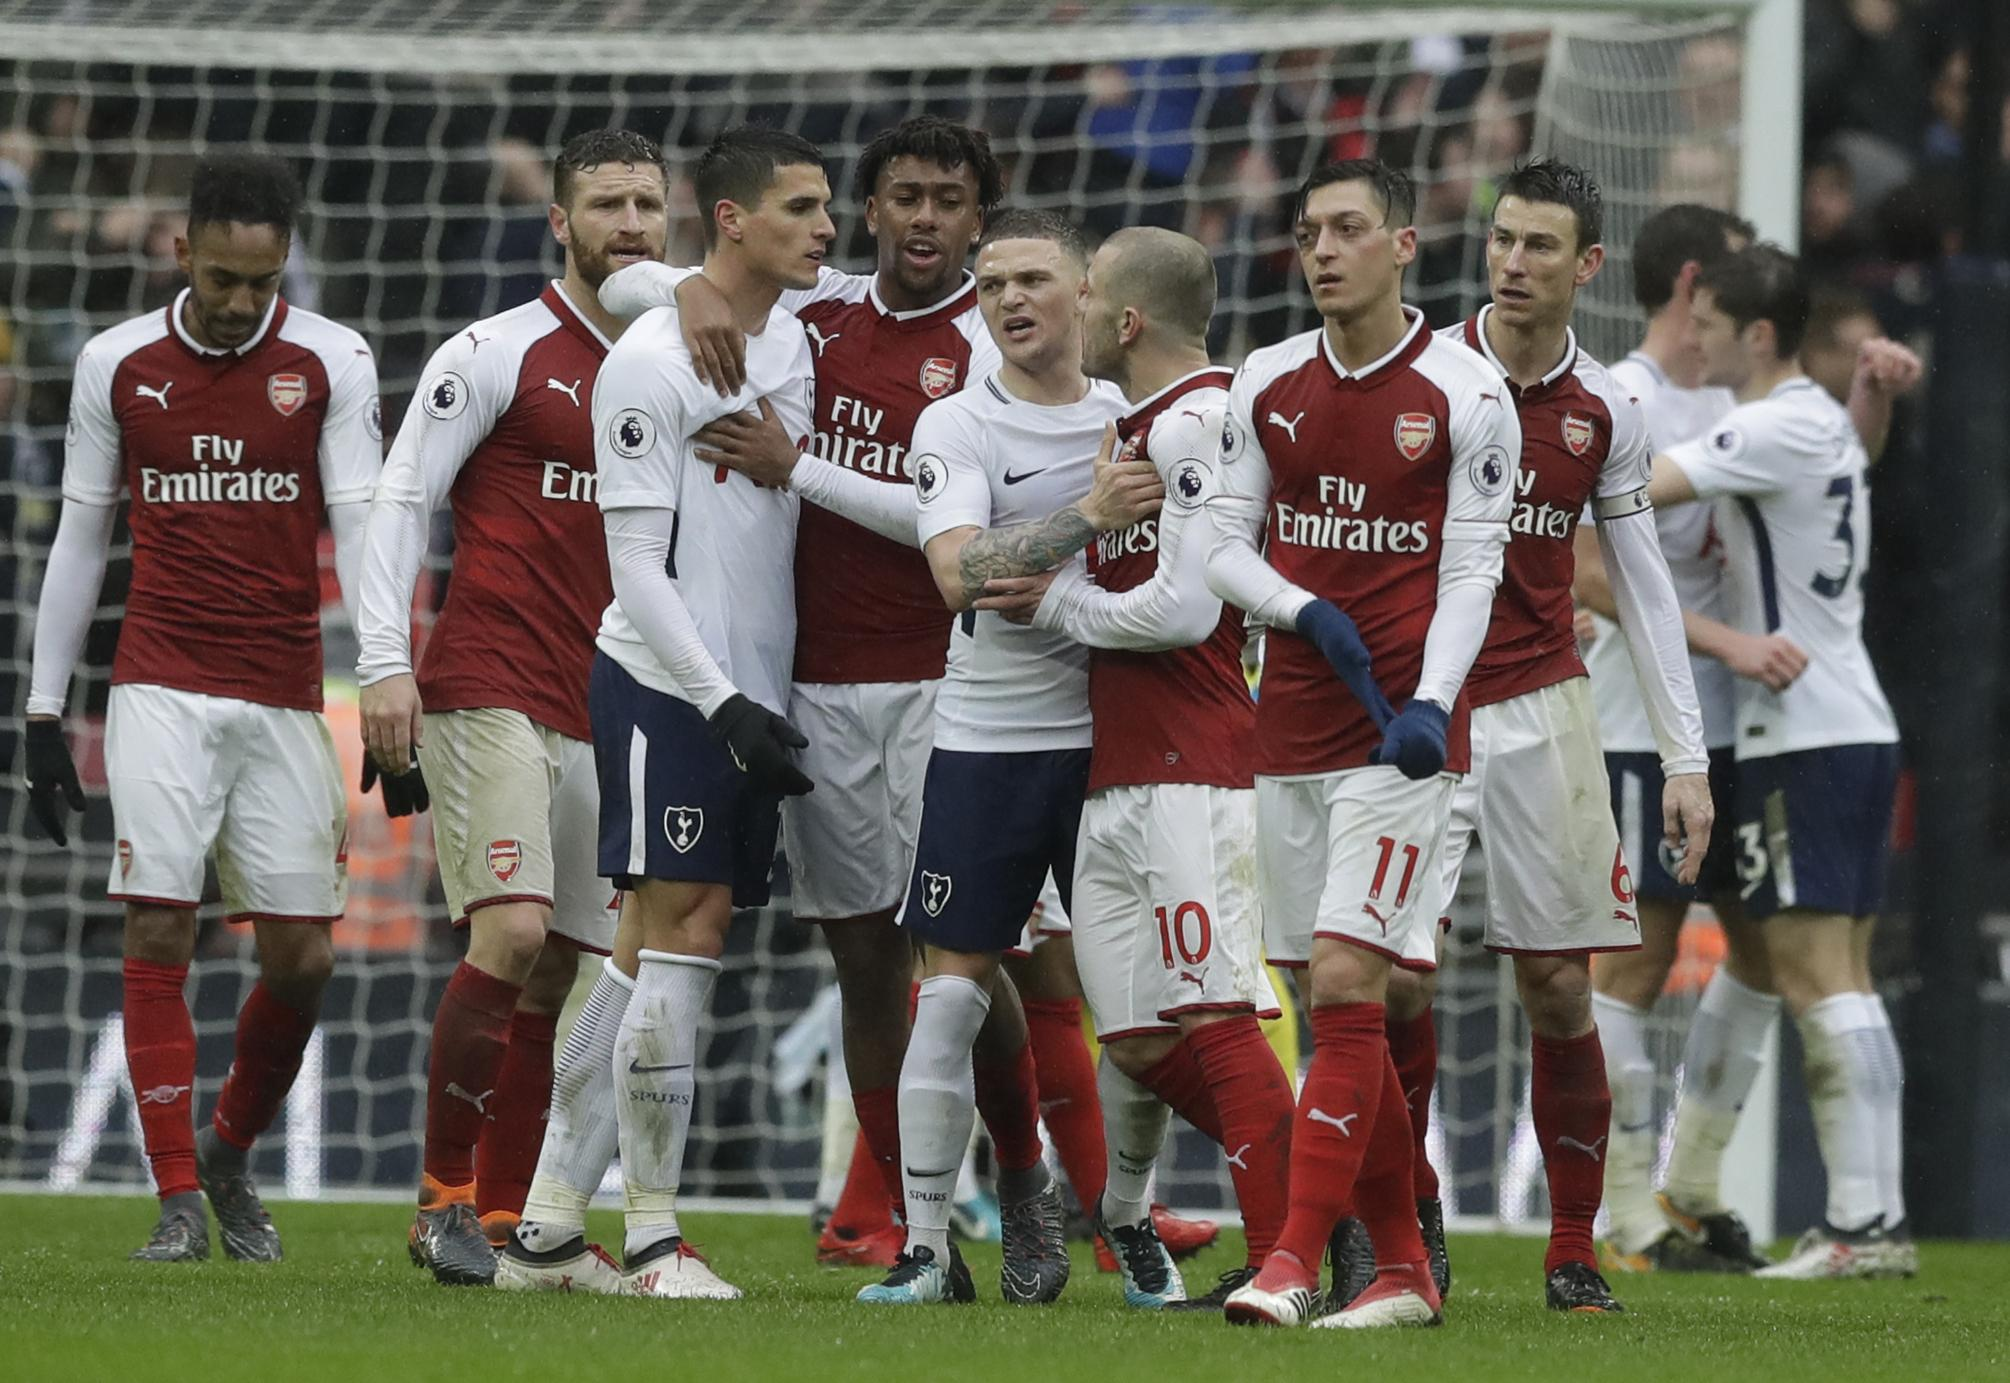 Trippier and Ozil's faces here are everything